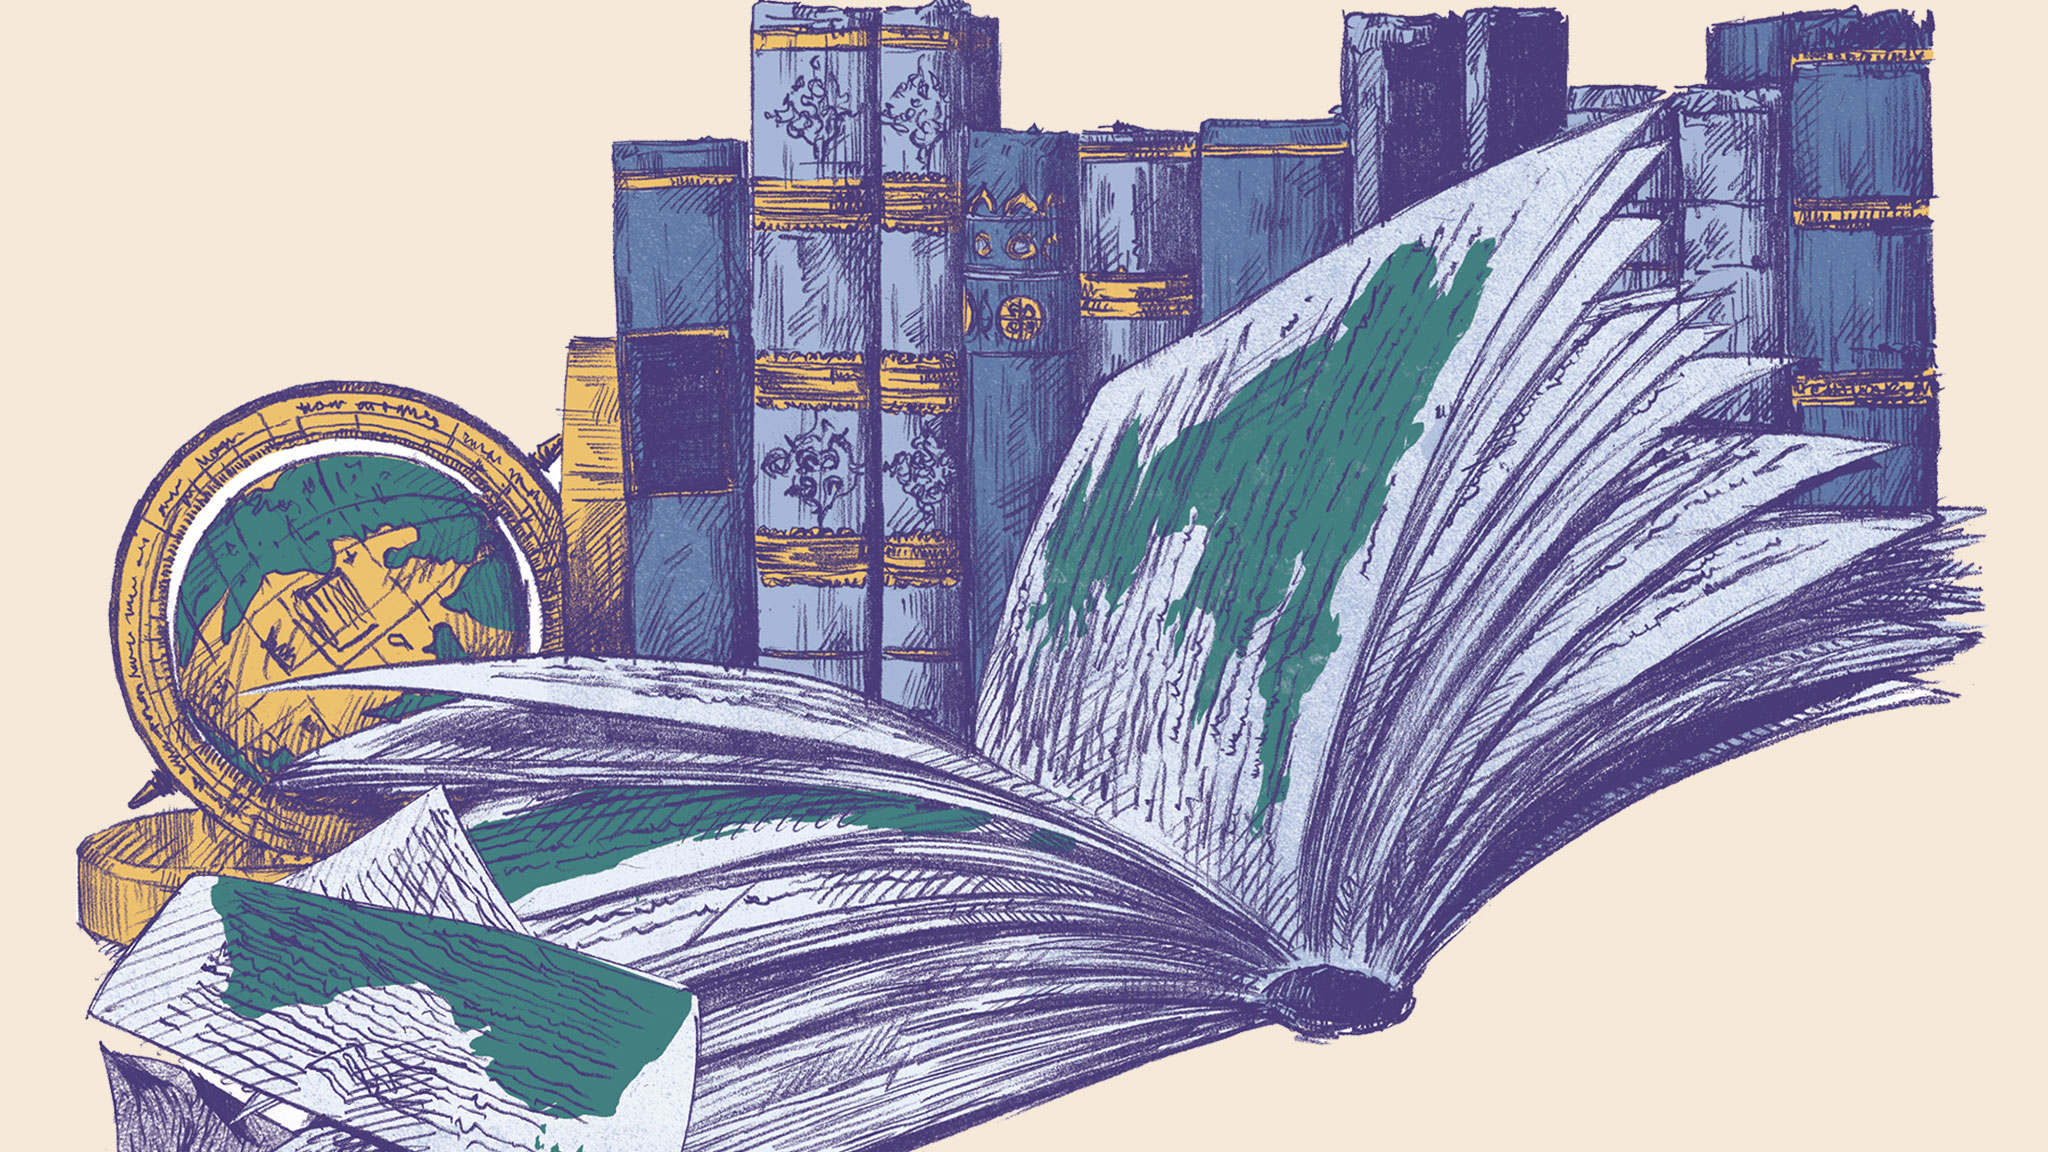 Can books cross borders?